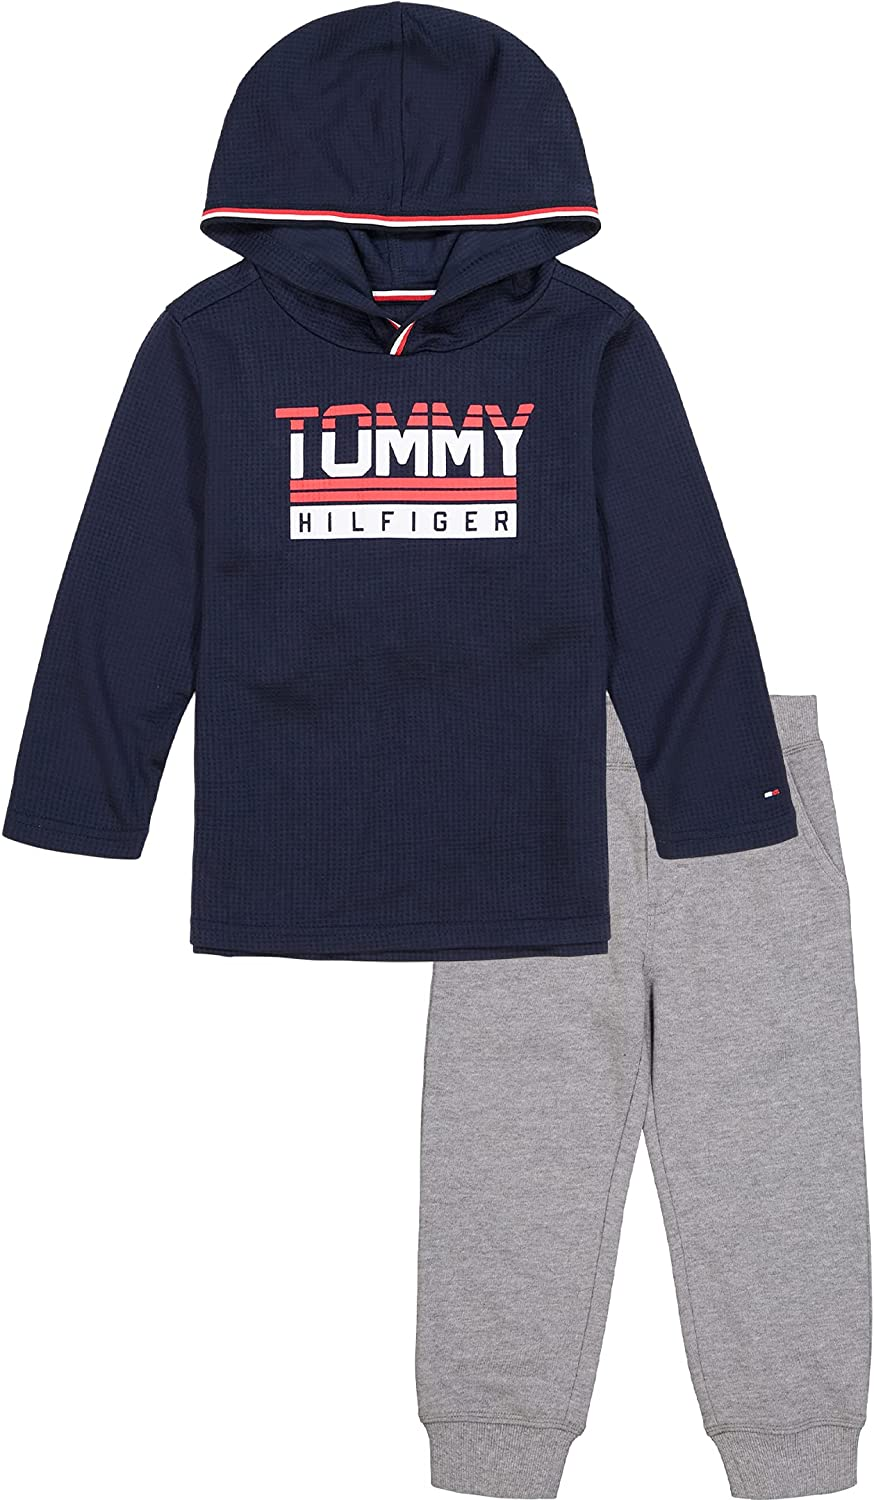 Tommy Hilfiger Baby Boys' 2 Pieces Hooded Pants Set